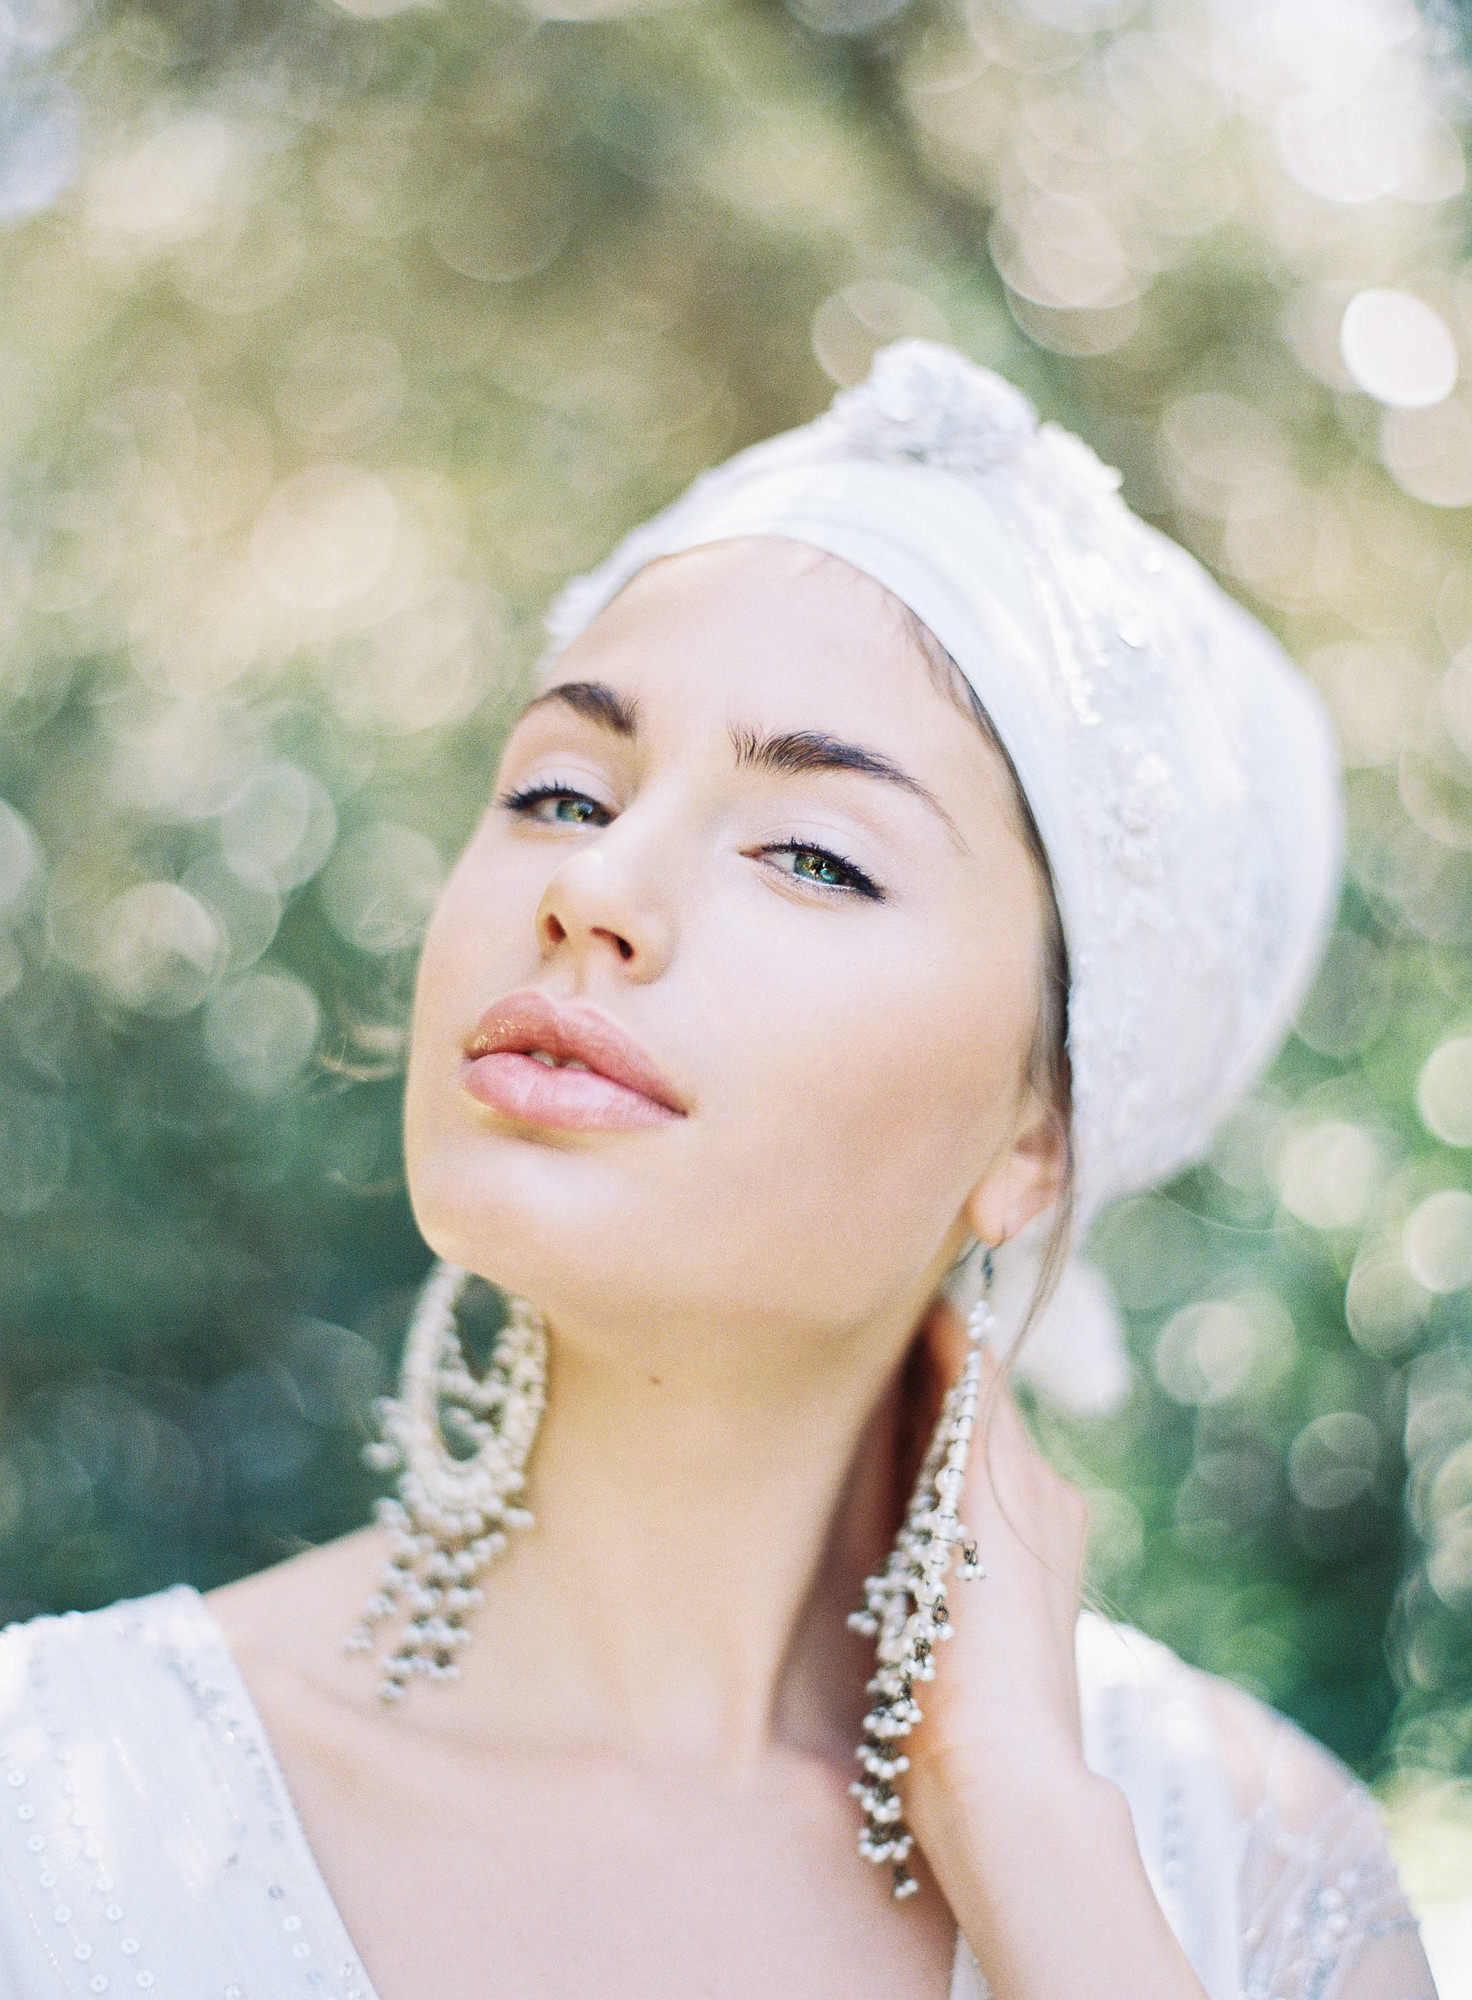 white bridal turban Indian chandelier earrings Jen Huang los angeles wedding photographer